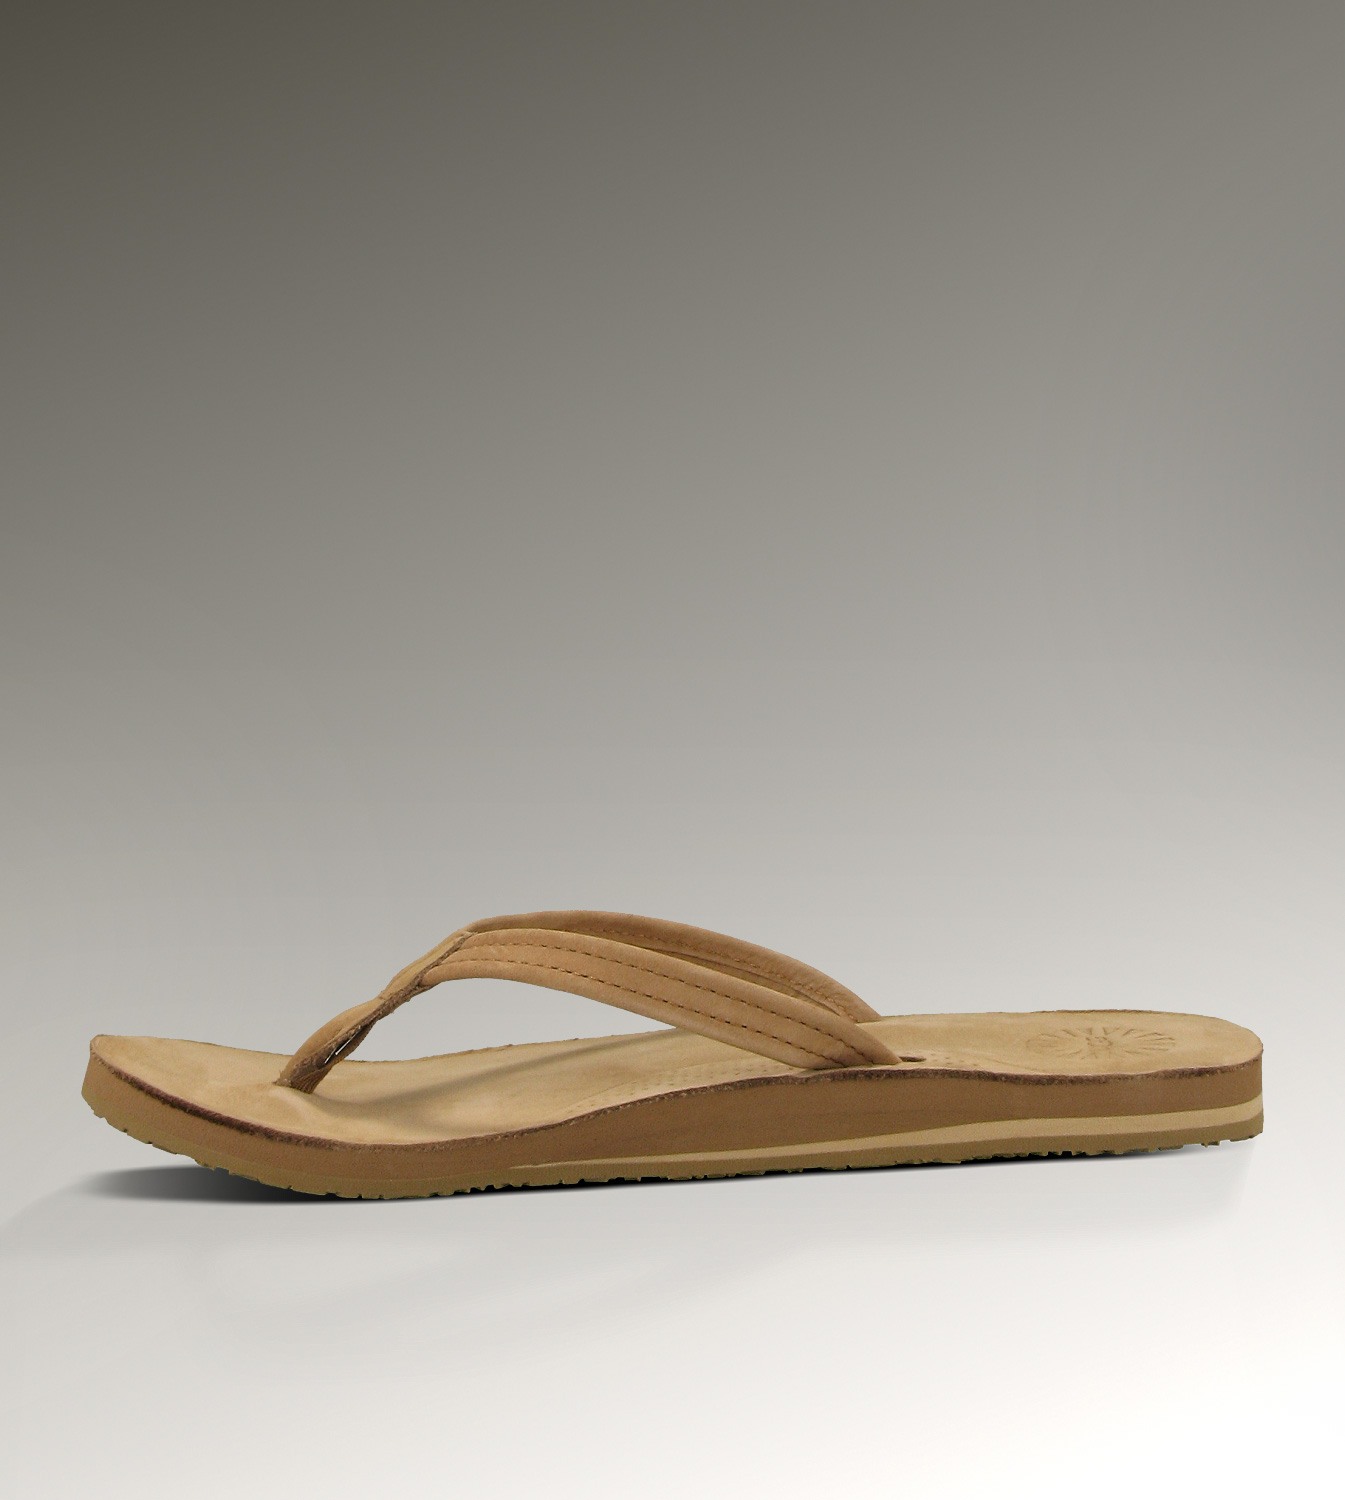 UGG Kayla 3092 Chestnut Sandals